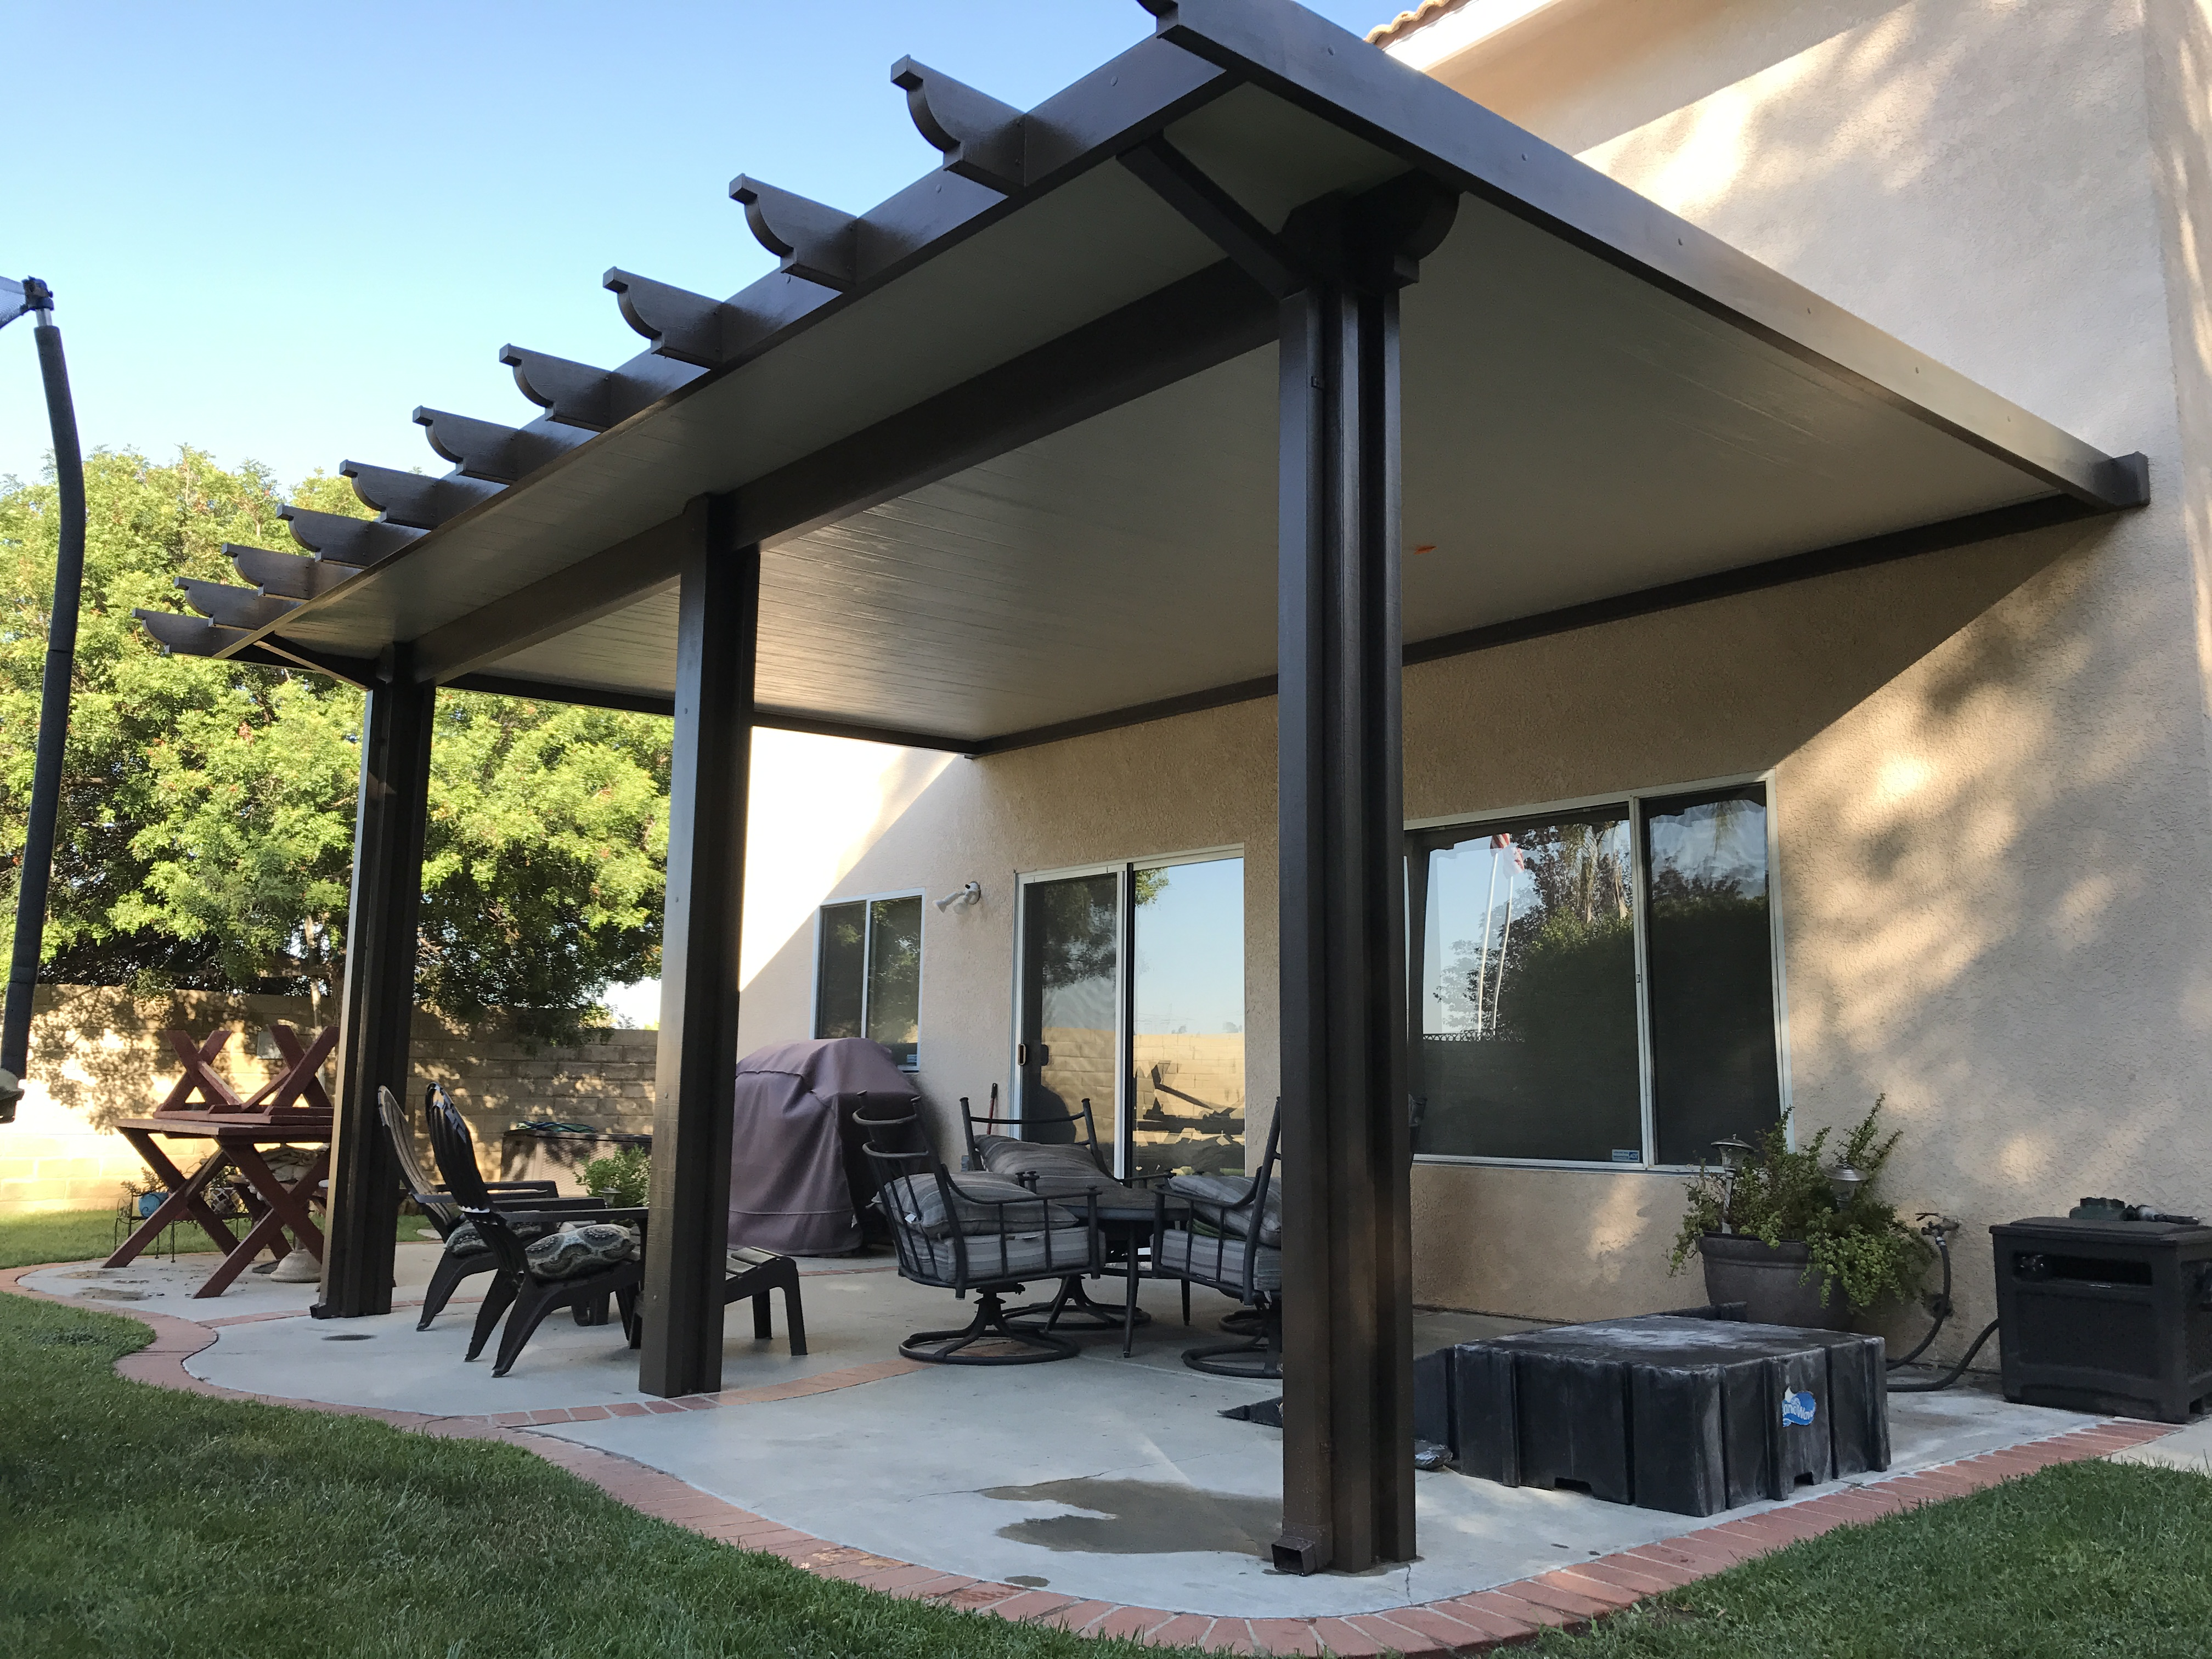 Alumawood Insulated Roofed Patio Cover - Patiocovered.com on Patio Cover Ideas Images id=71997